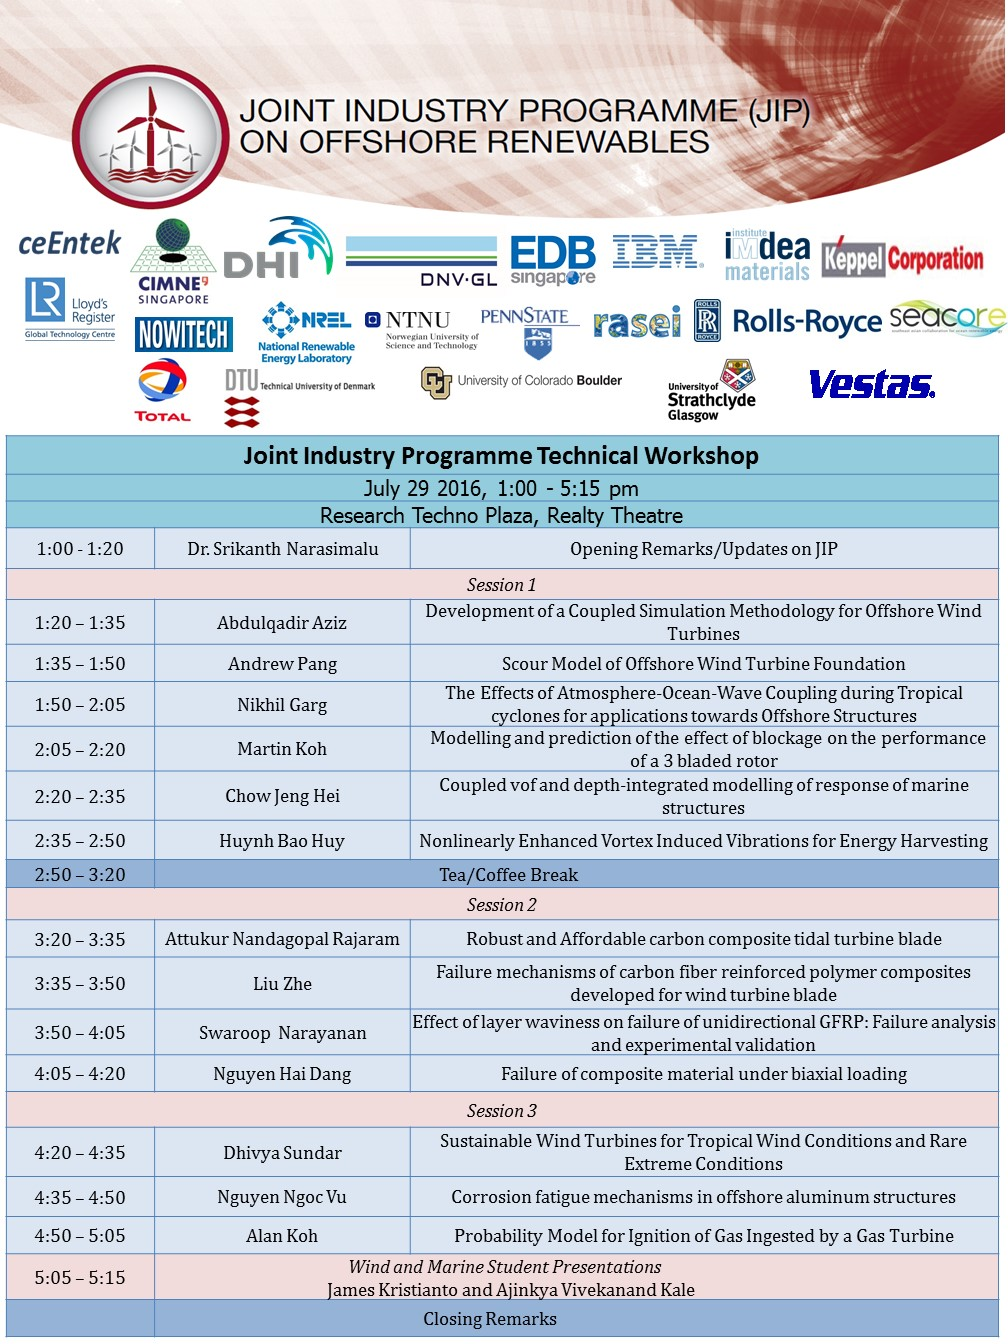 Joint Industry Programme Technical Workshop Agenda_v5 1